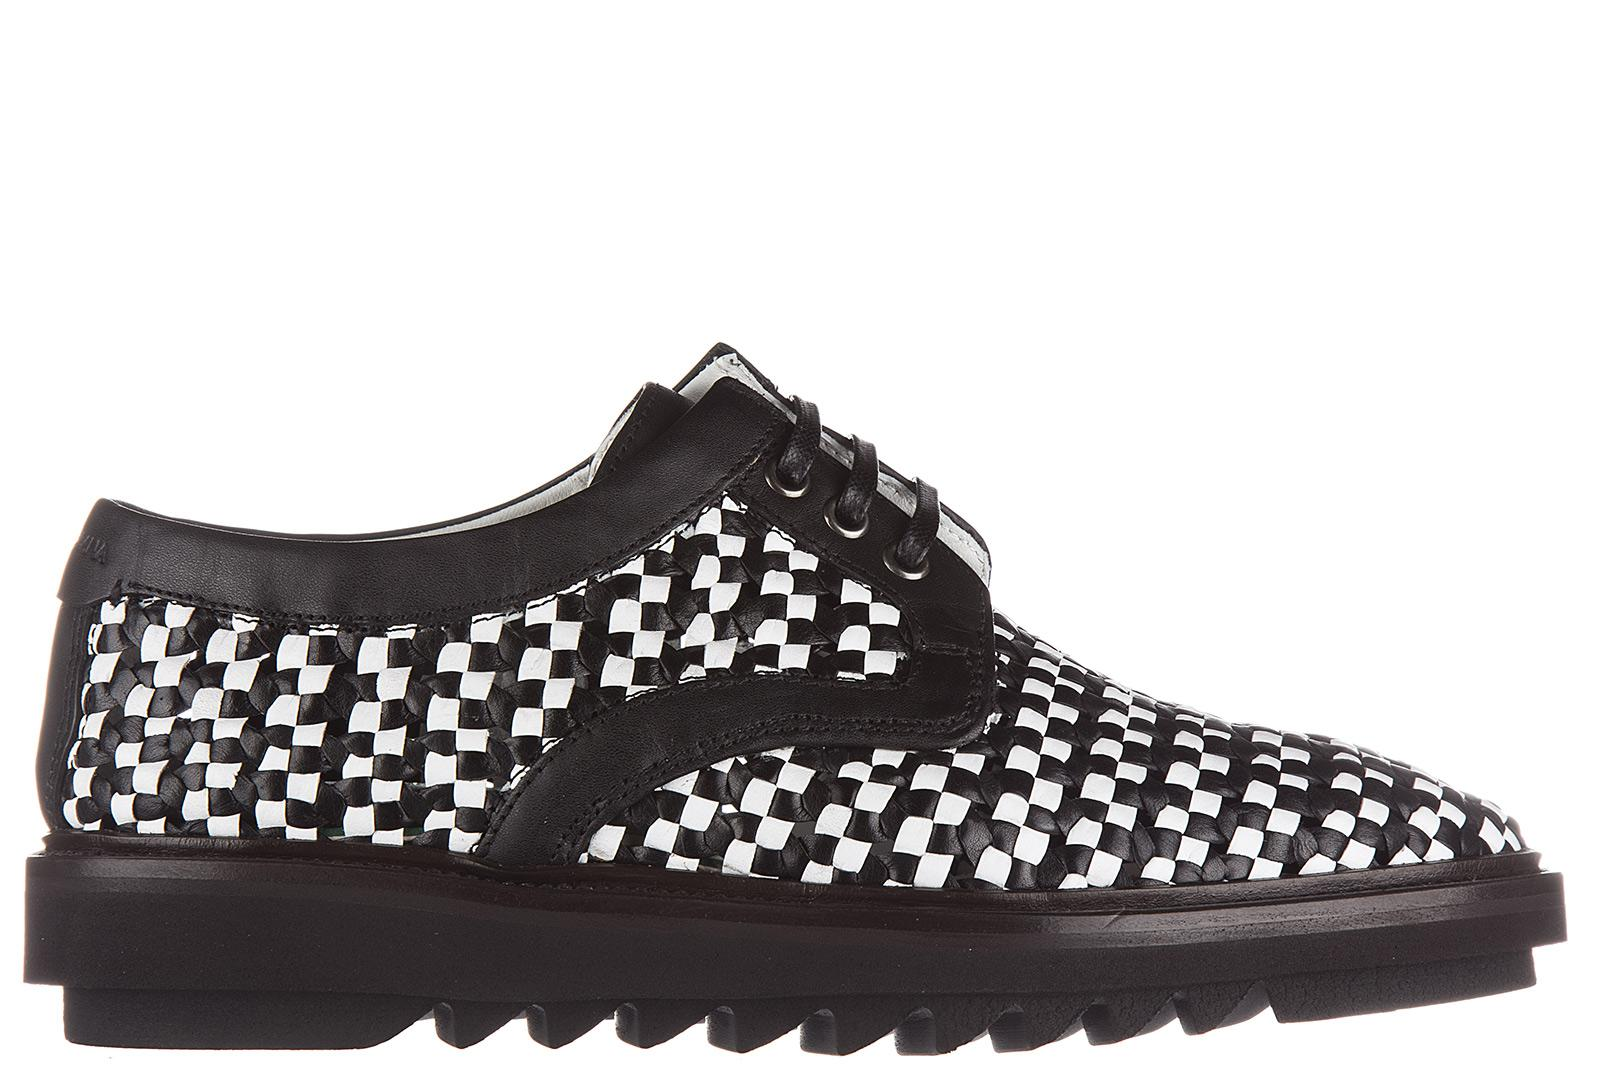 Derby Lace-Up shoes leather black red snake embossment Dolce & Gabbana duLaL5yUE8